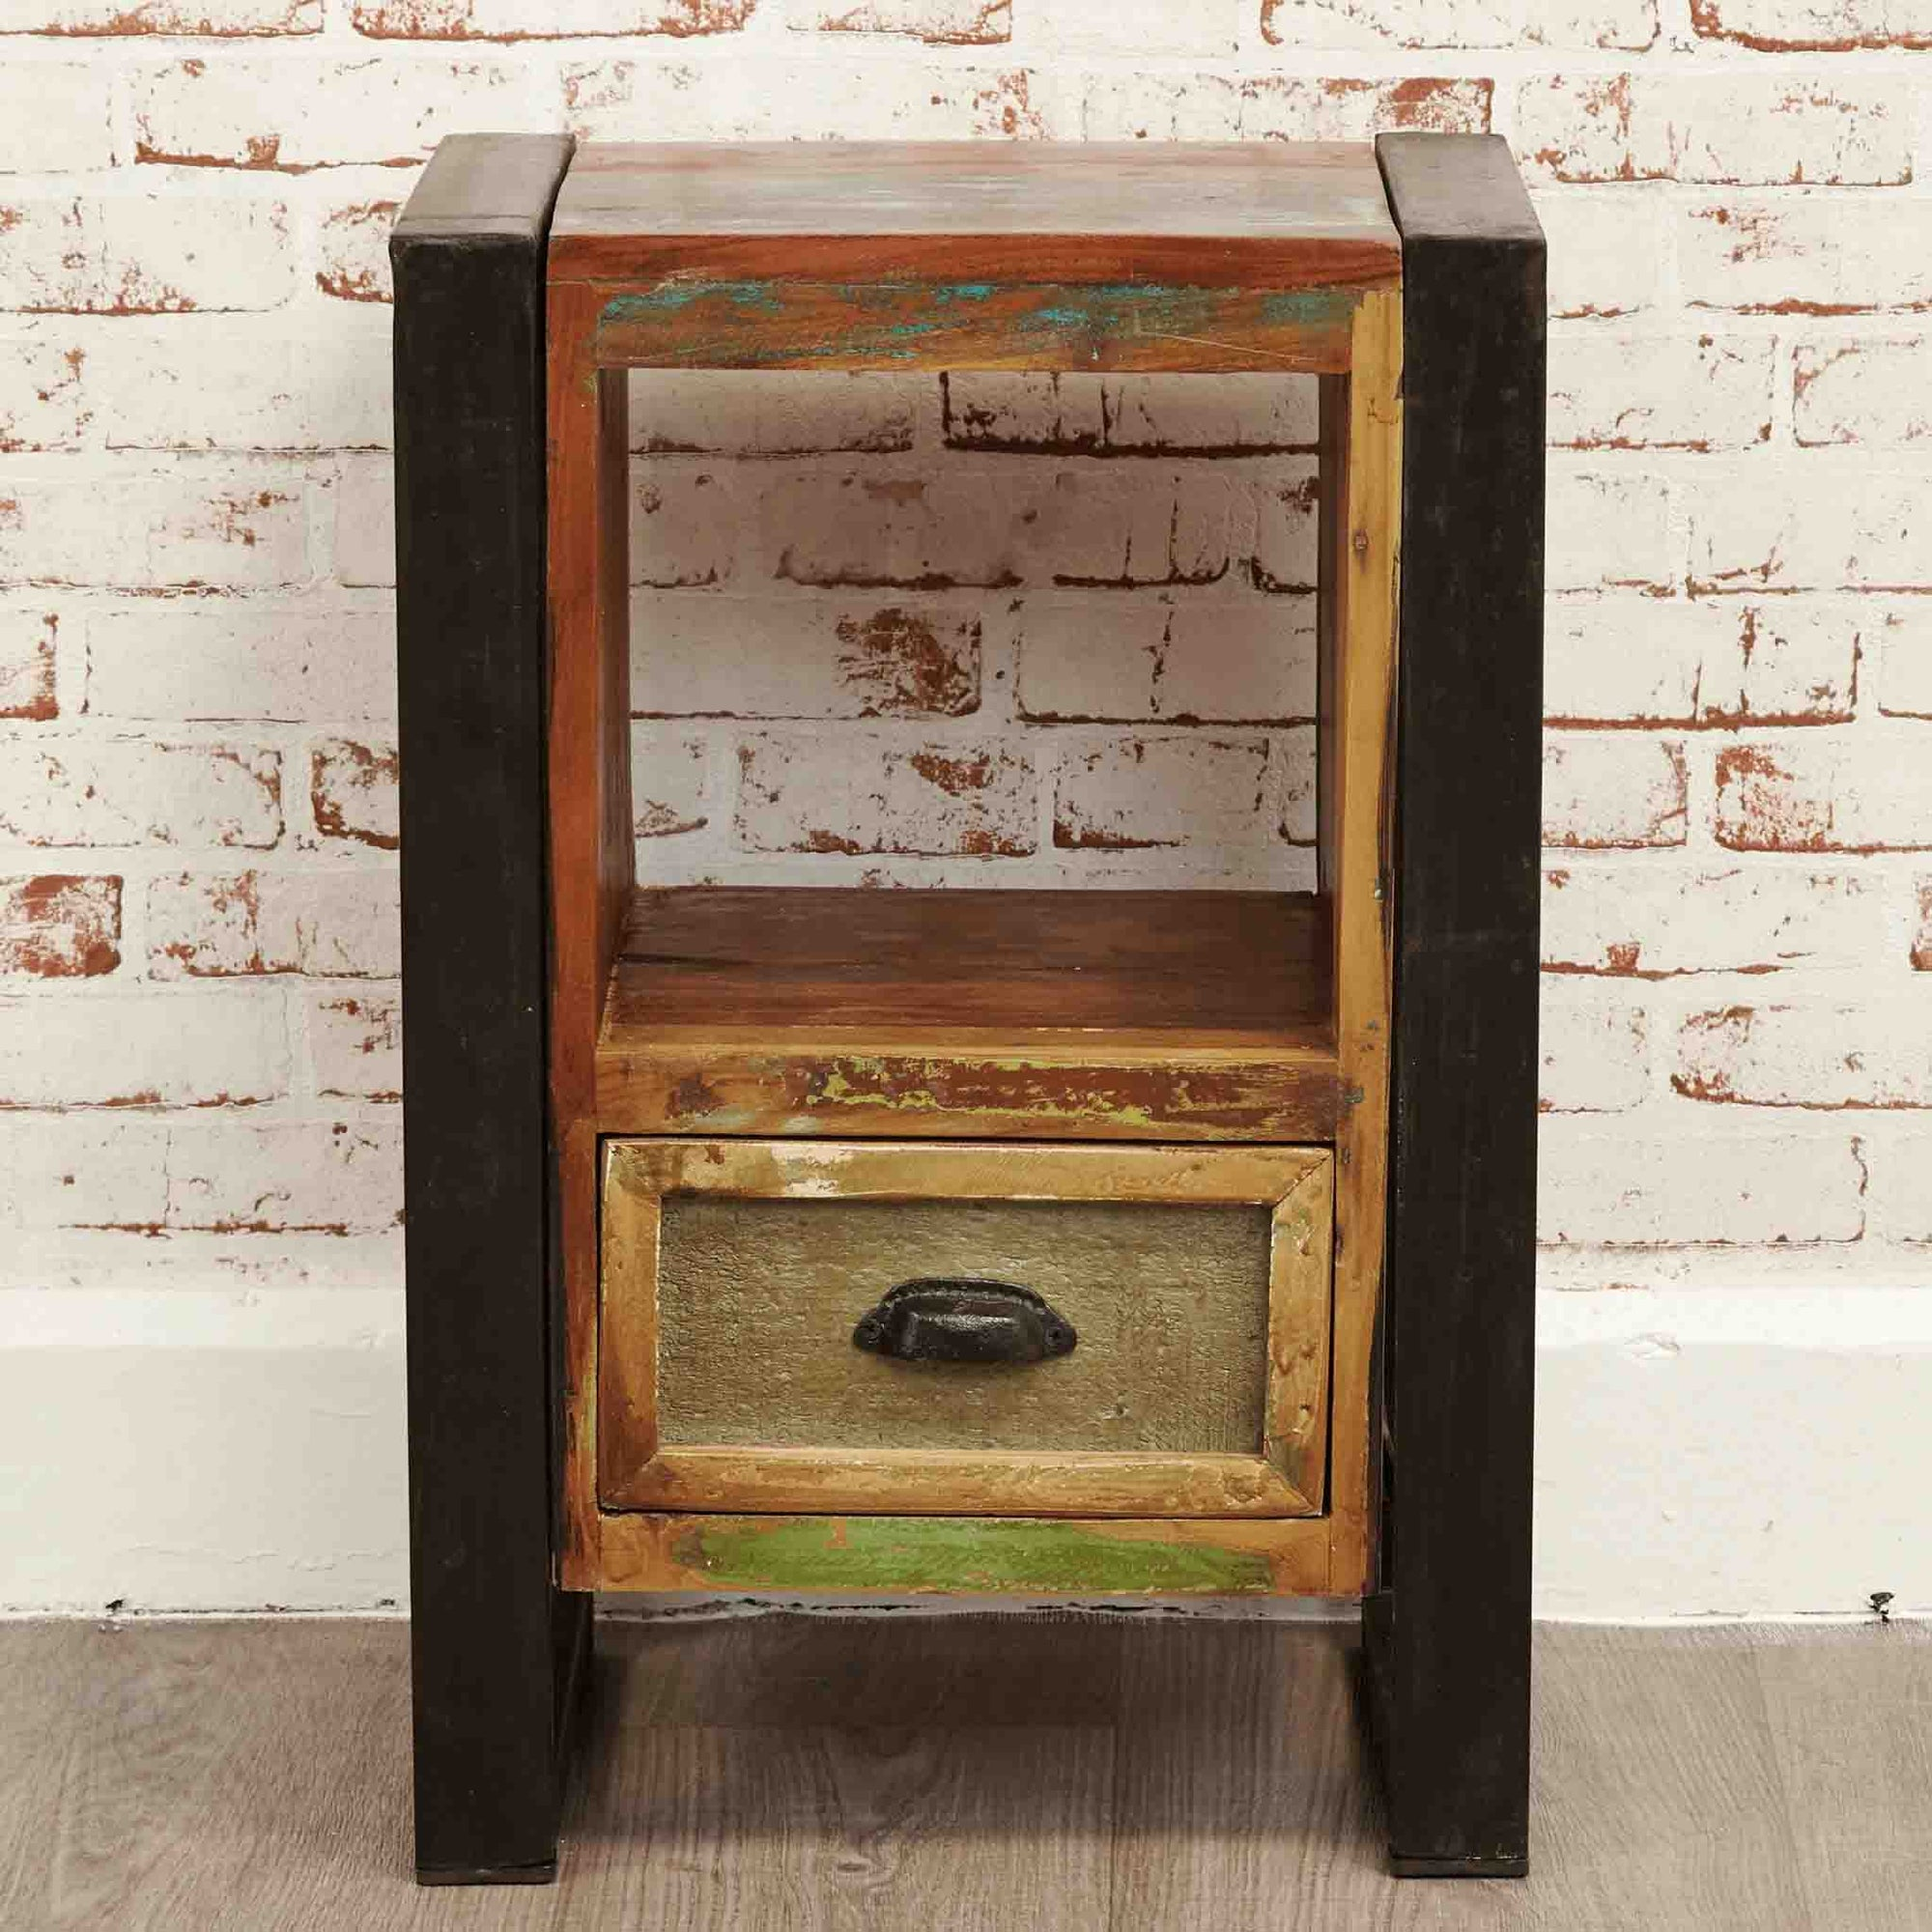 The Urban Chic Industrial Reclaimed Wood Bedside Table from Roseland Furniture